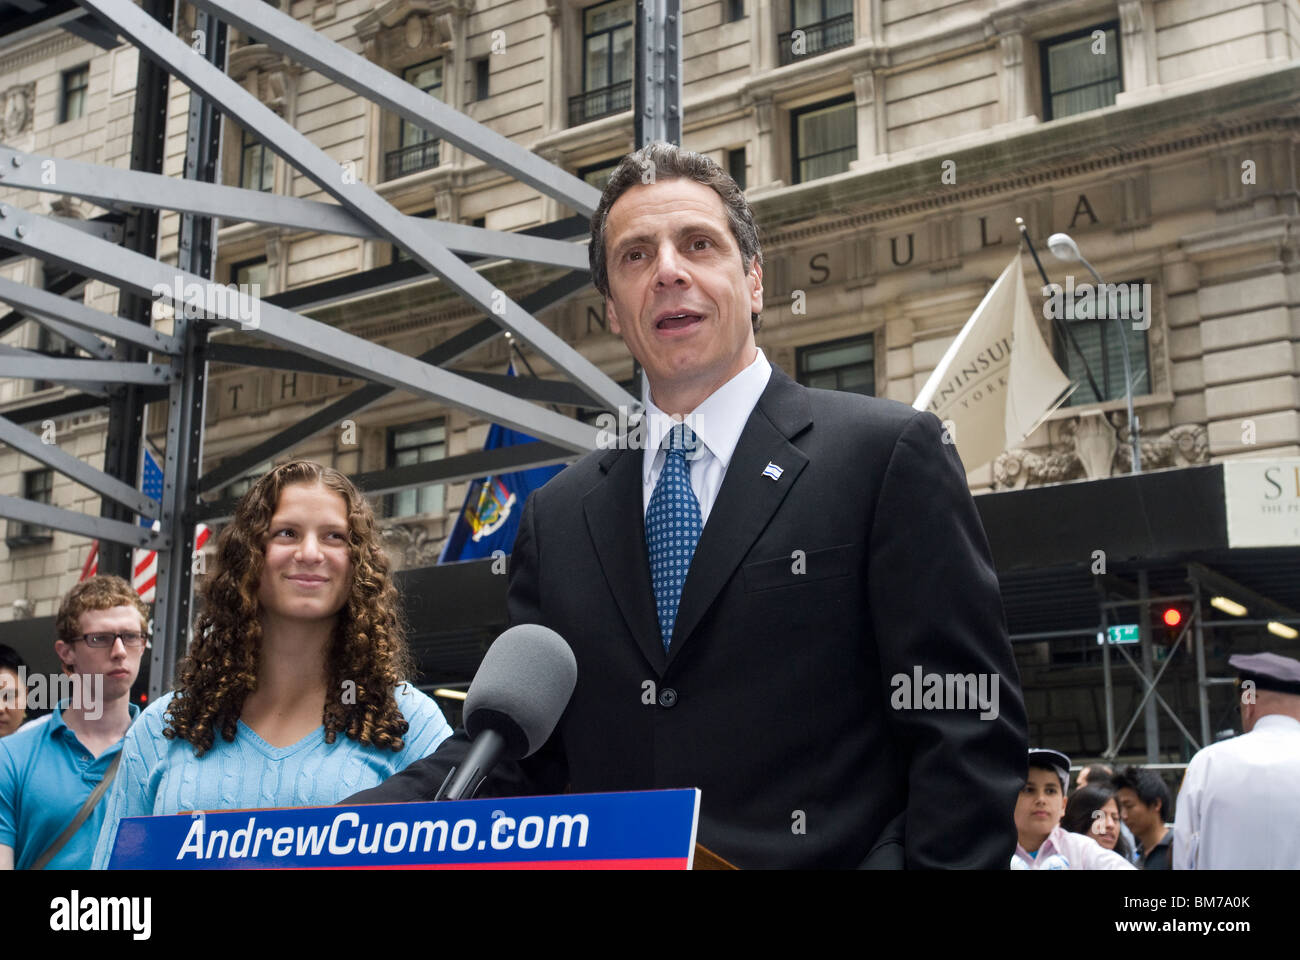 NYS Attorney General Andrew Cuomo speaks to the press prior to marching in the Salute to to Israel parade in New - Stock Image